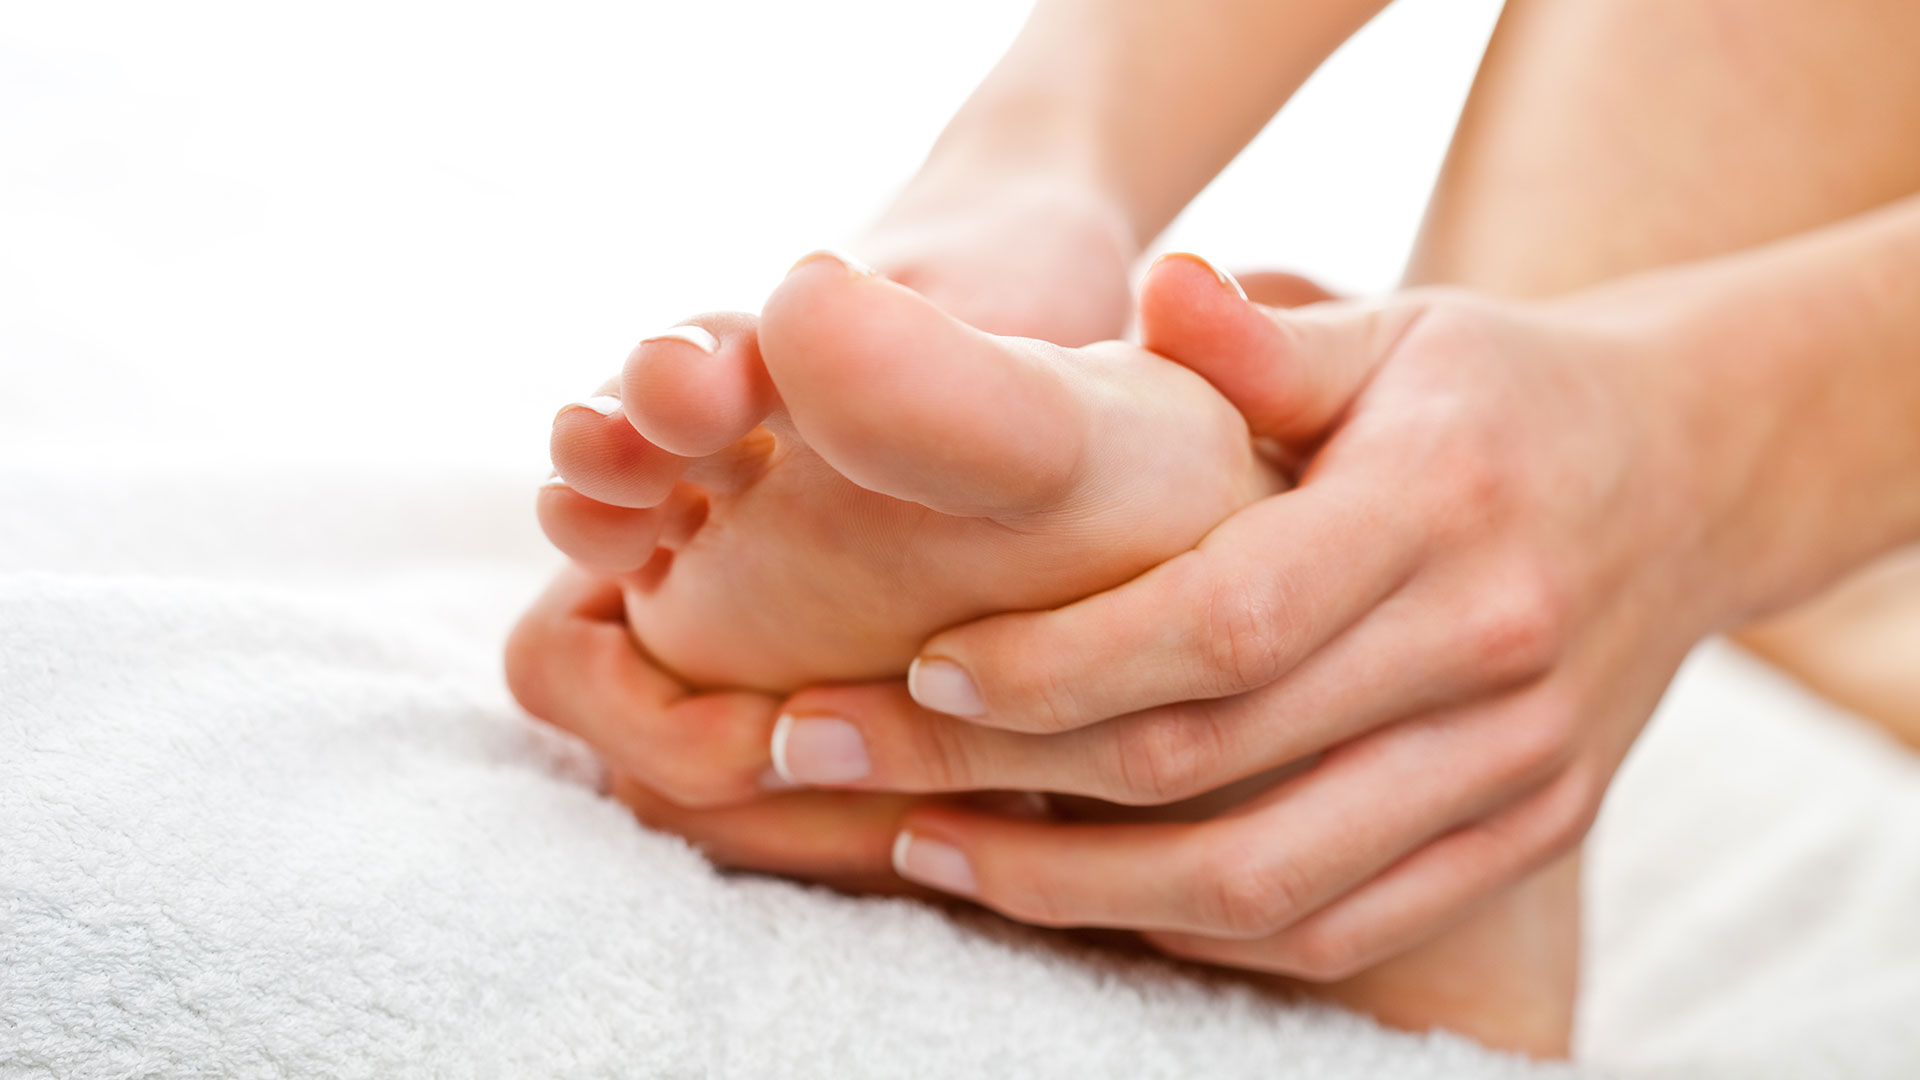 9 Poses To Prevent Bunions Amp Relieve Bunion Pain